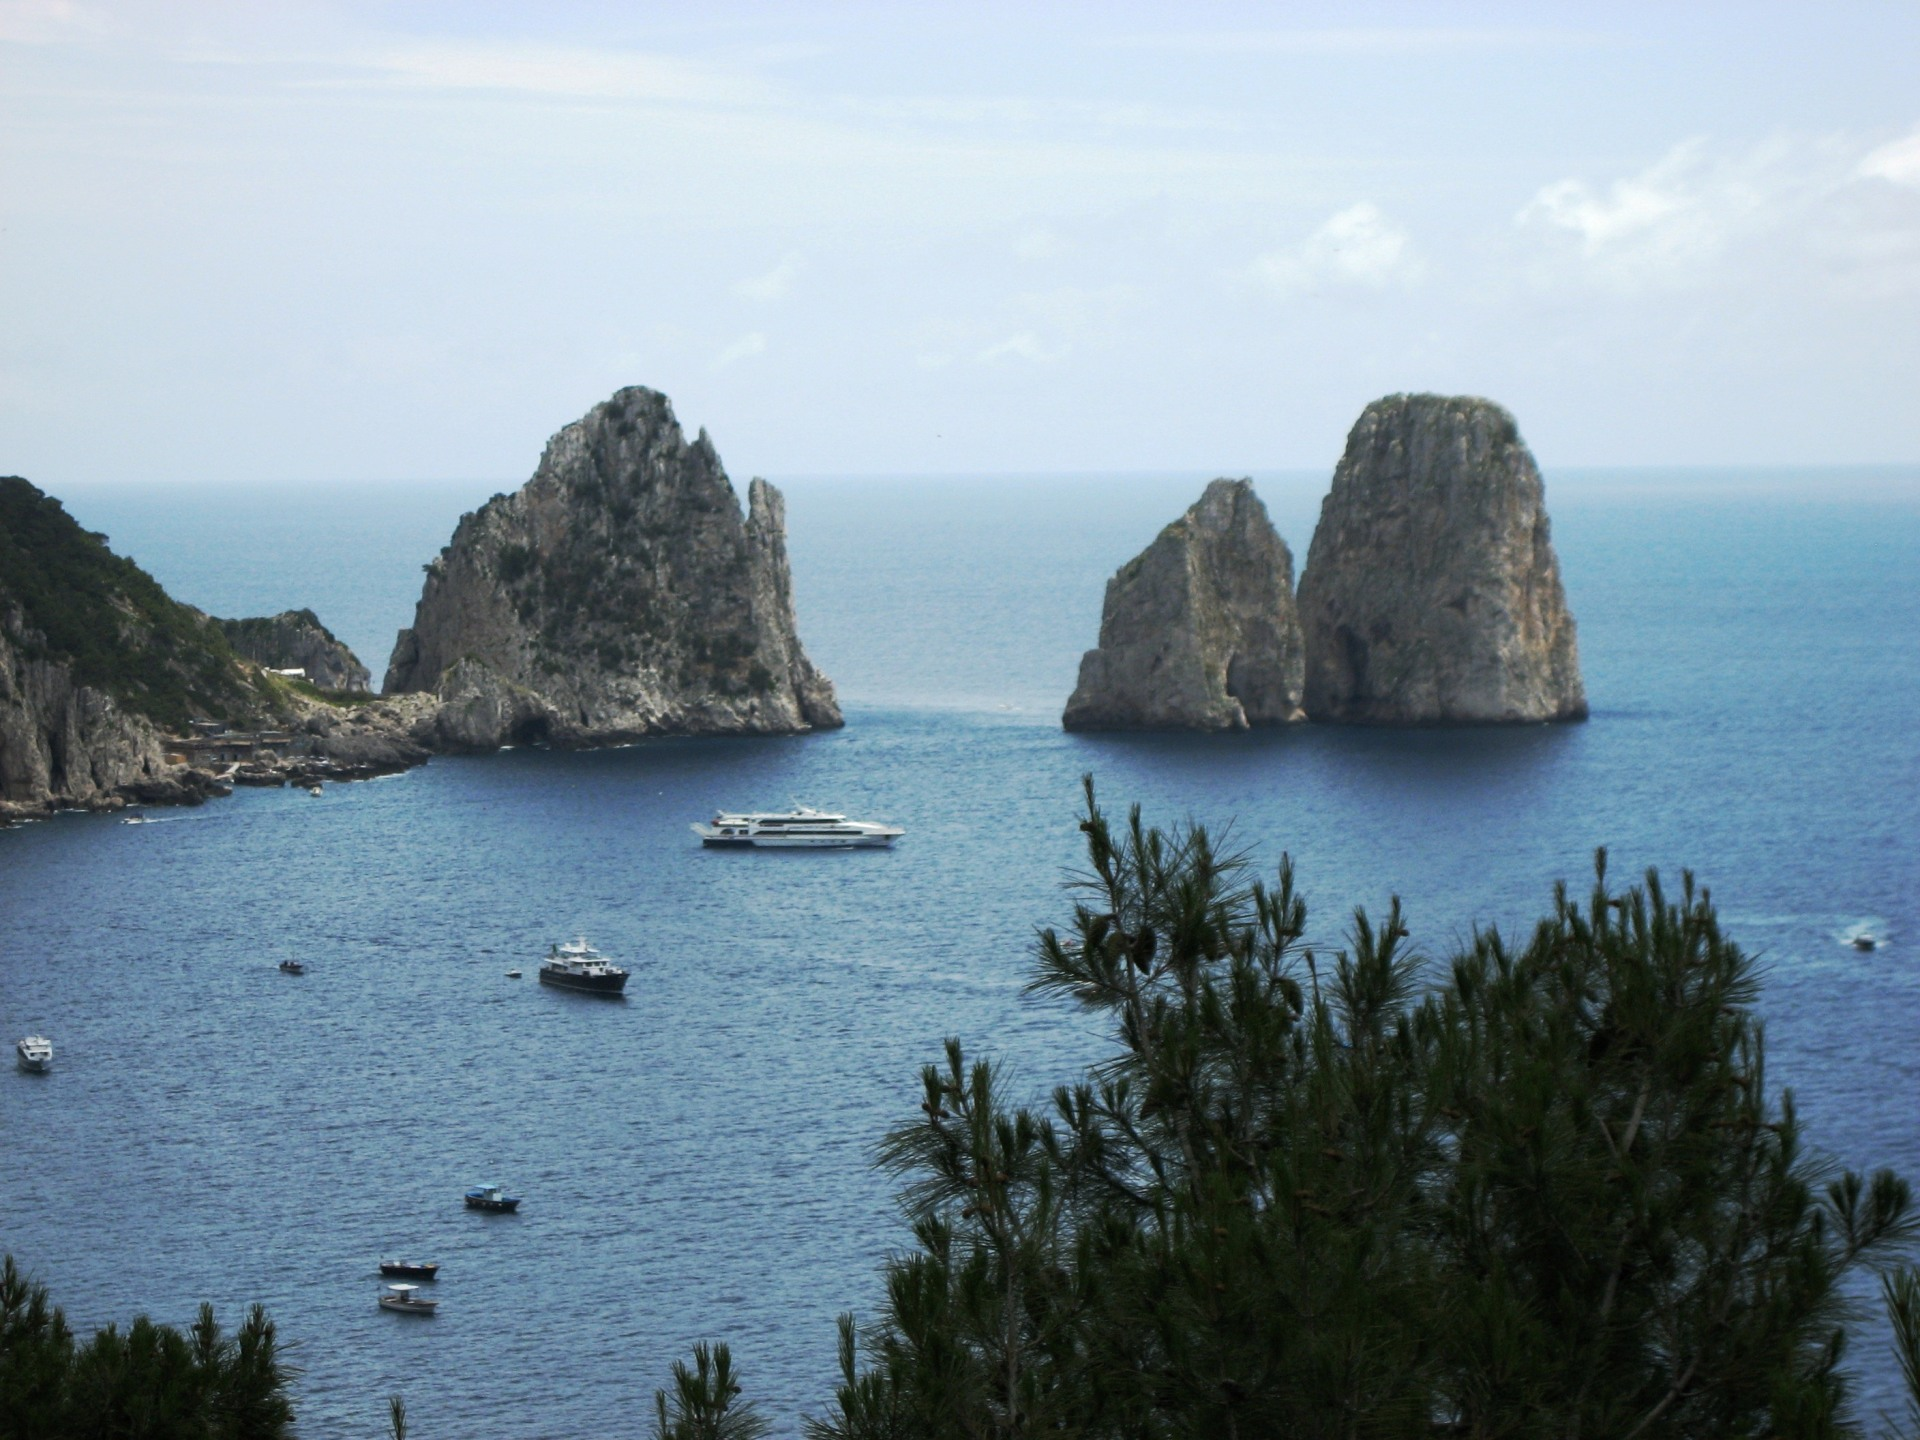 Capri's Most Iconic Faraglioni Rocks